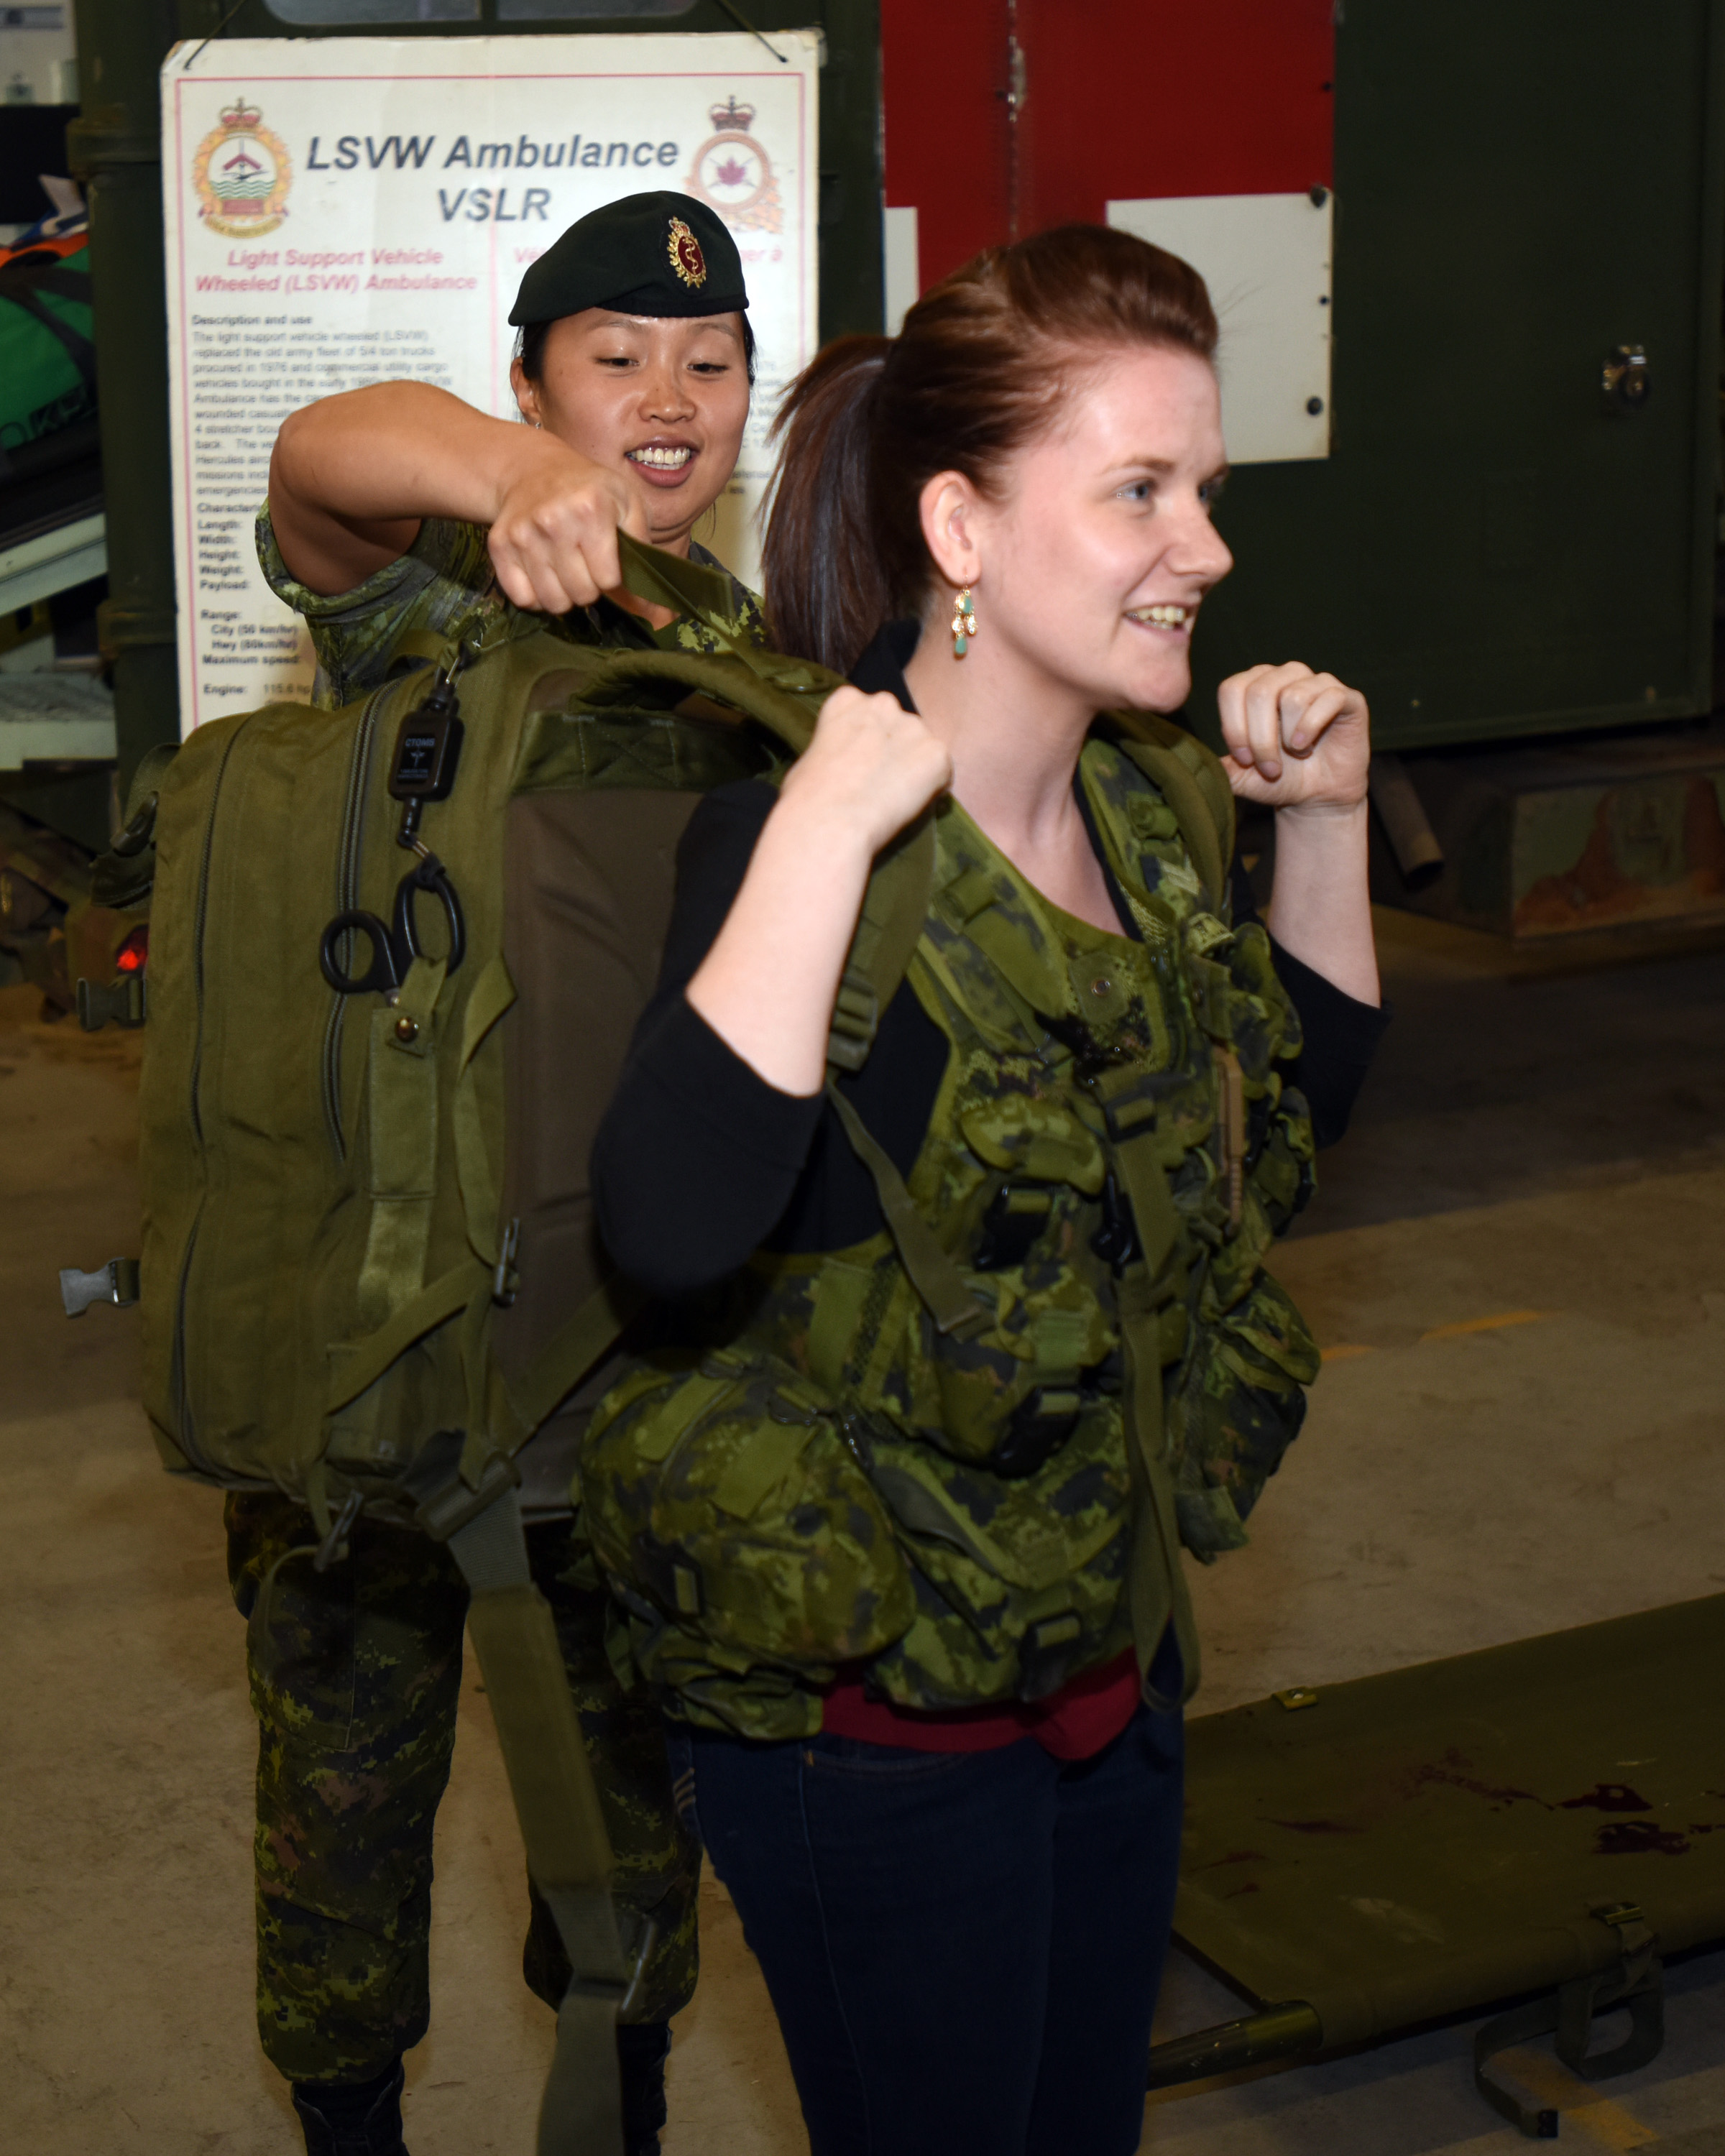 Sergeant Bo-Ram Hong, a medic with 33 Field Ambulance in in Halifax, Nova Scotia, loads up a candidate with the ACE program with a Medic's Kit bag and a Tactical Vest during a demonstration in the Halifax Armouries on 7 May 2015.